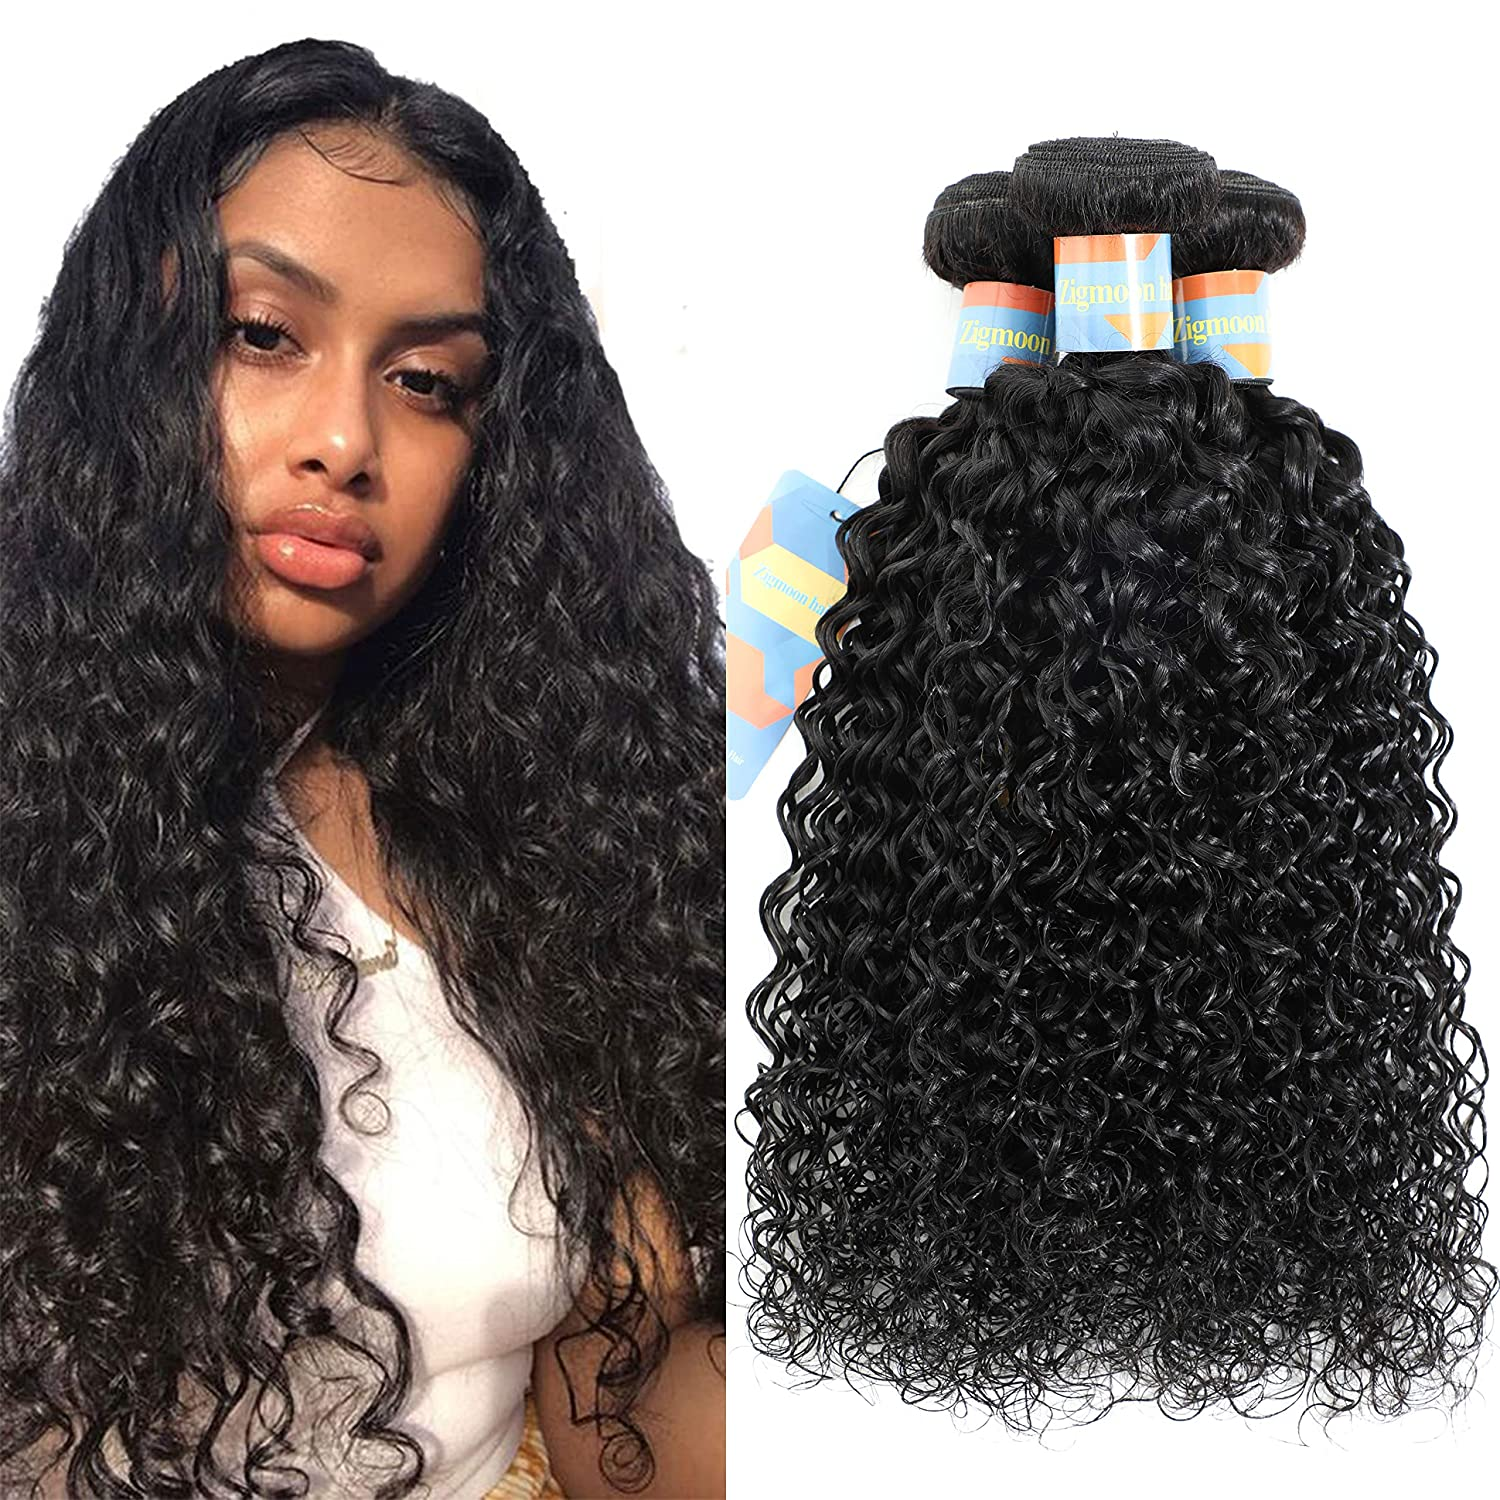 Sales results No. 1 Brazilian Jerry Curly Bundles Los Angeles Mall Hair 12''14''1